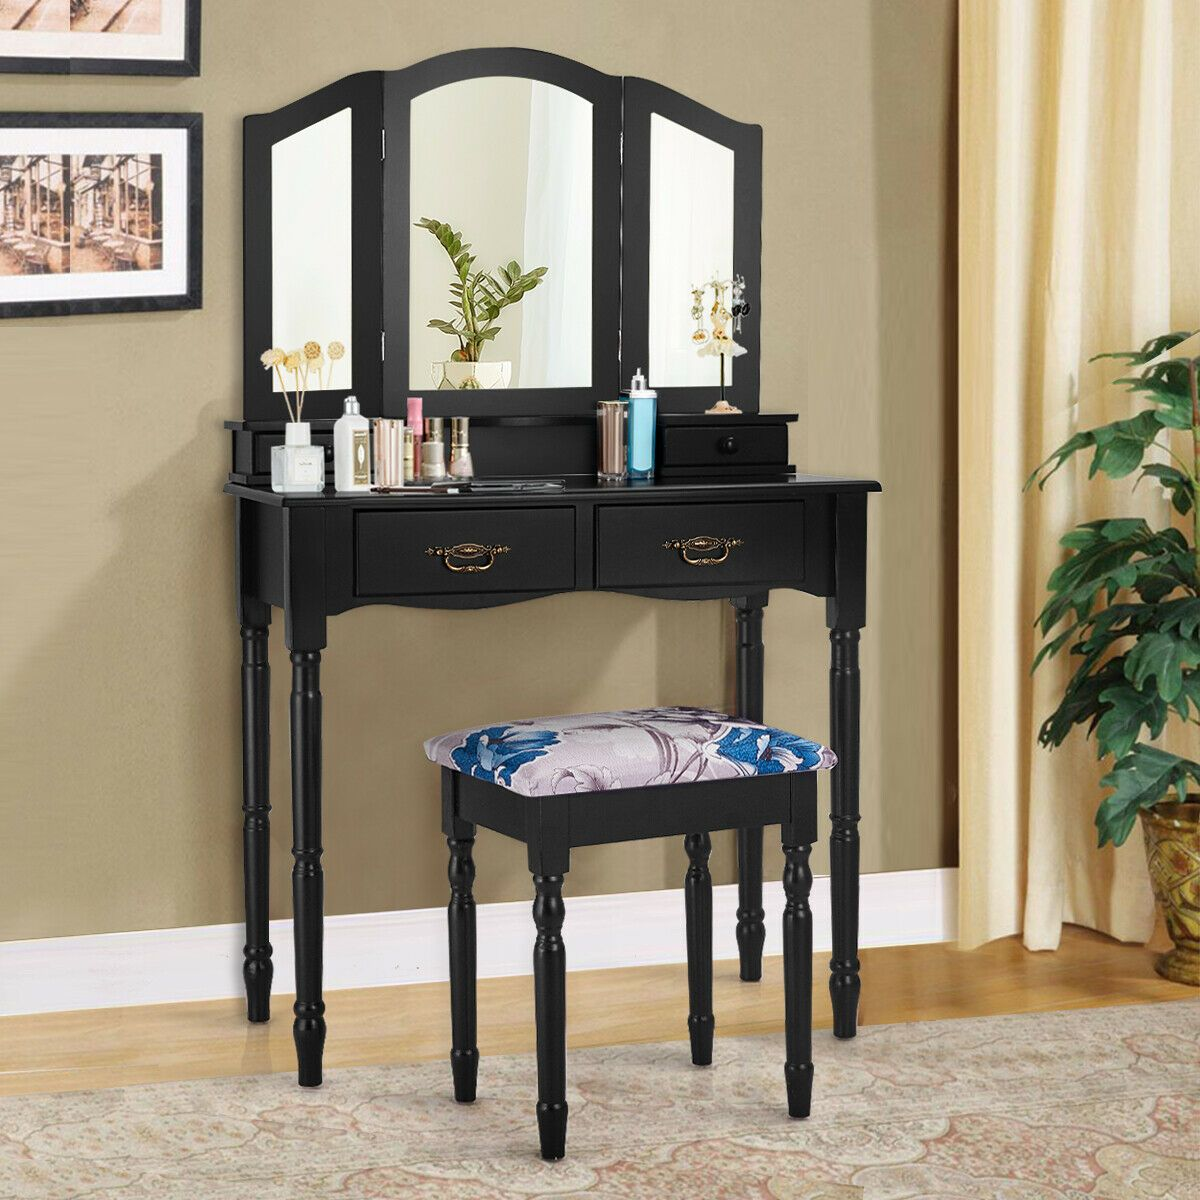 Home in 2020 Vanity mirror, Table stool, Vanity table set